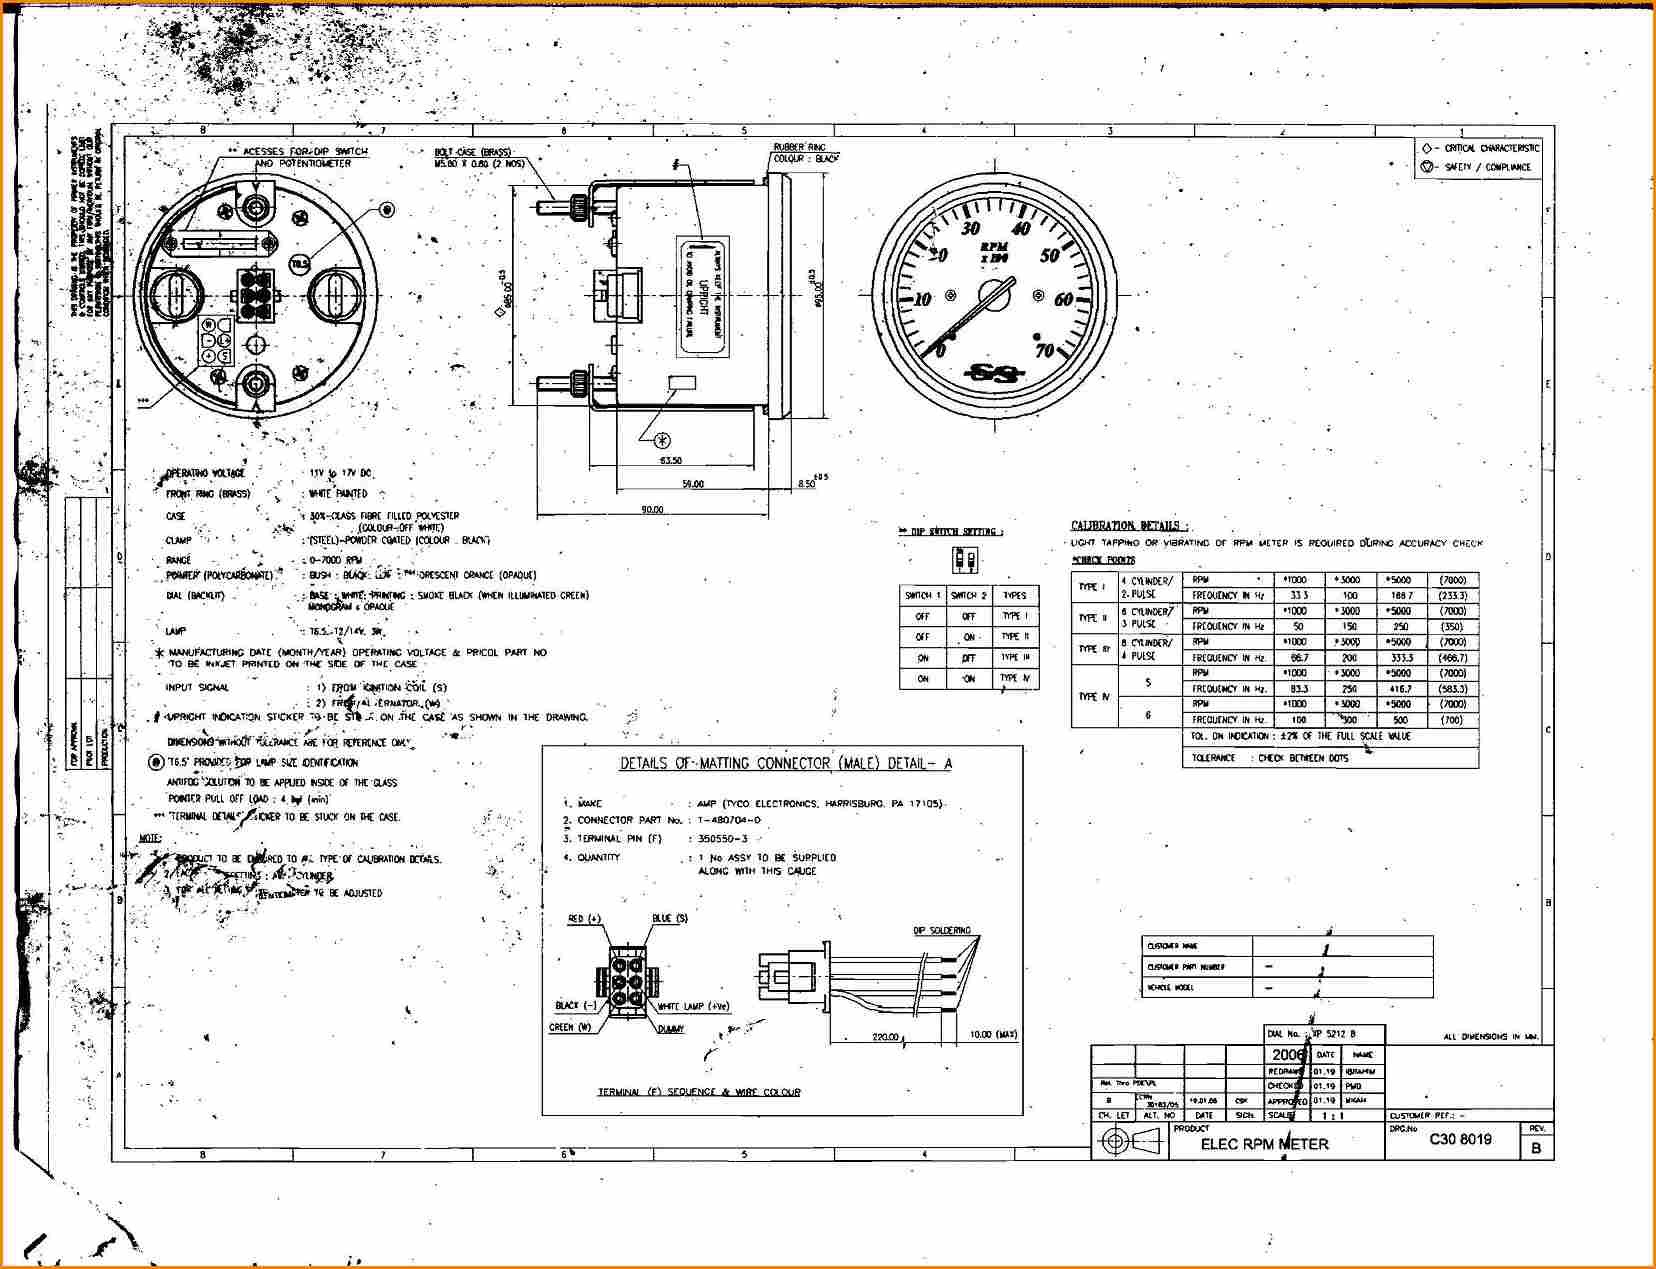 Suzuki Outboard Tachometer Wiring Diagram Gallery Gn400 Diagrams Instructions Lively Dt40 Download Johnson Pdf Beautiful Yamaha Tach